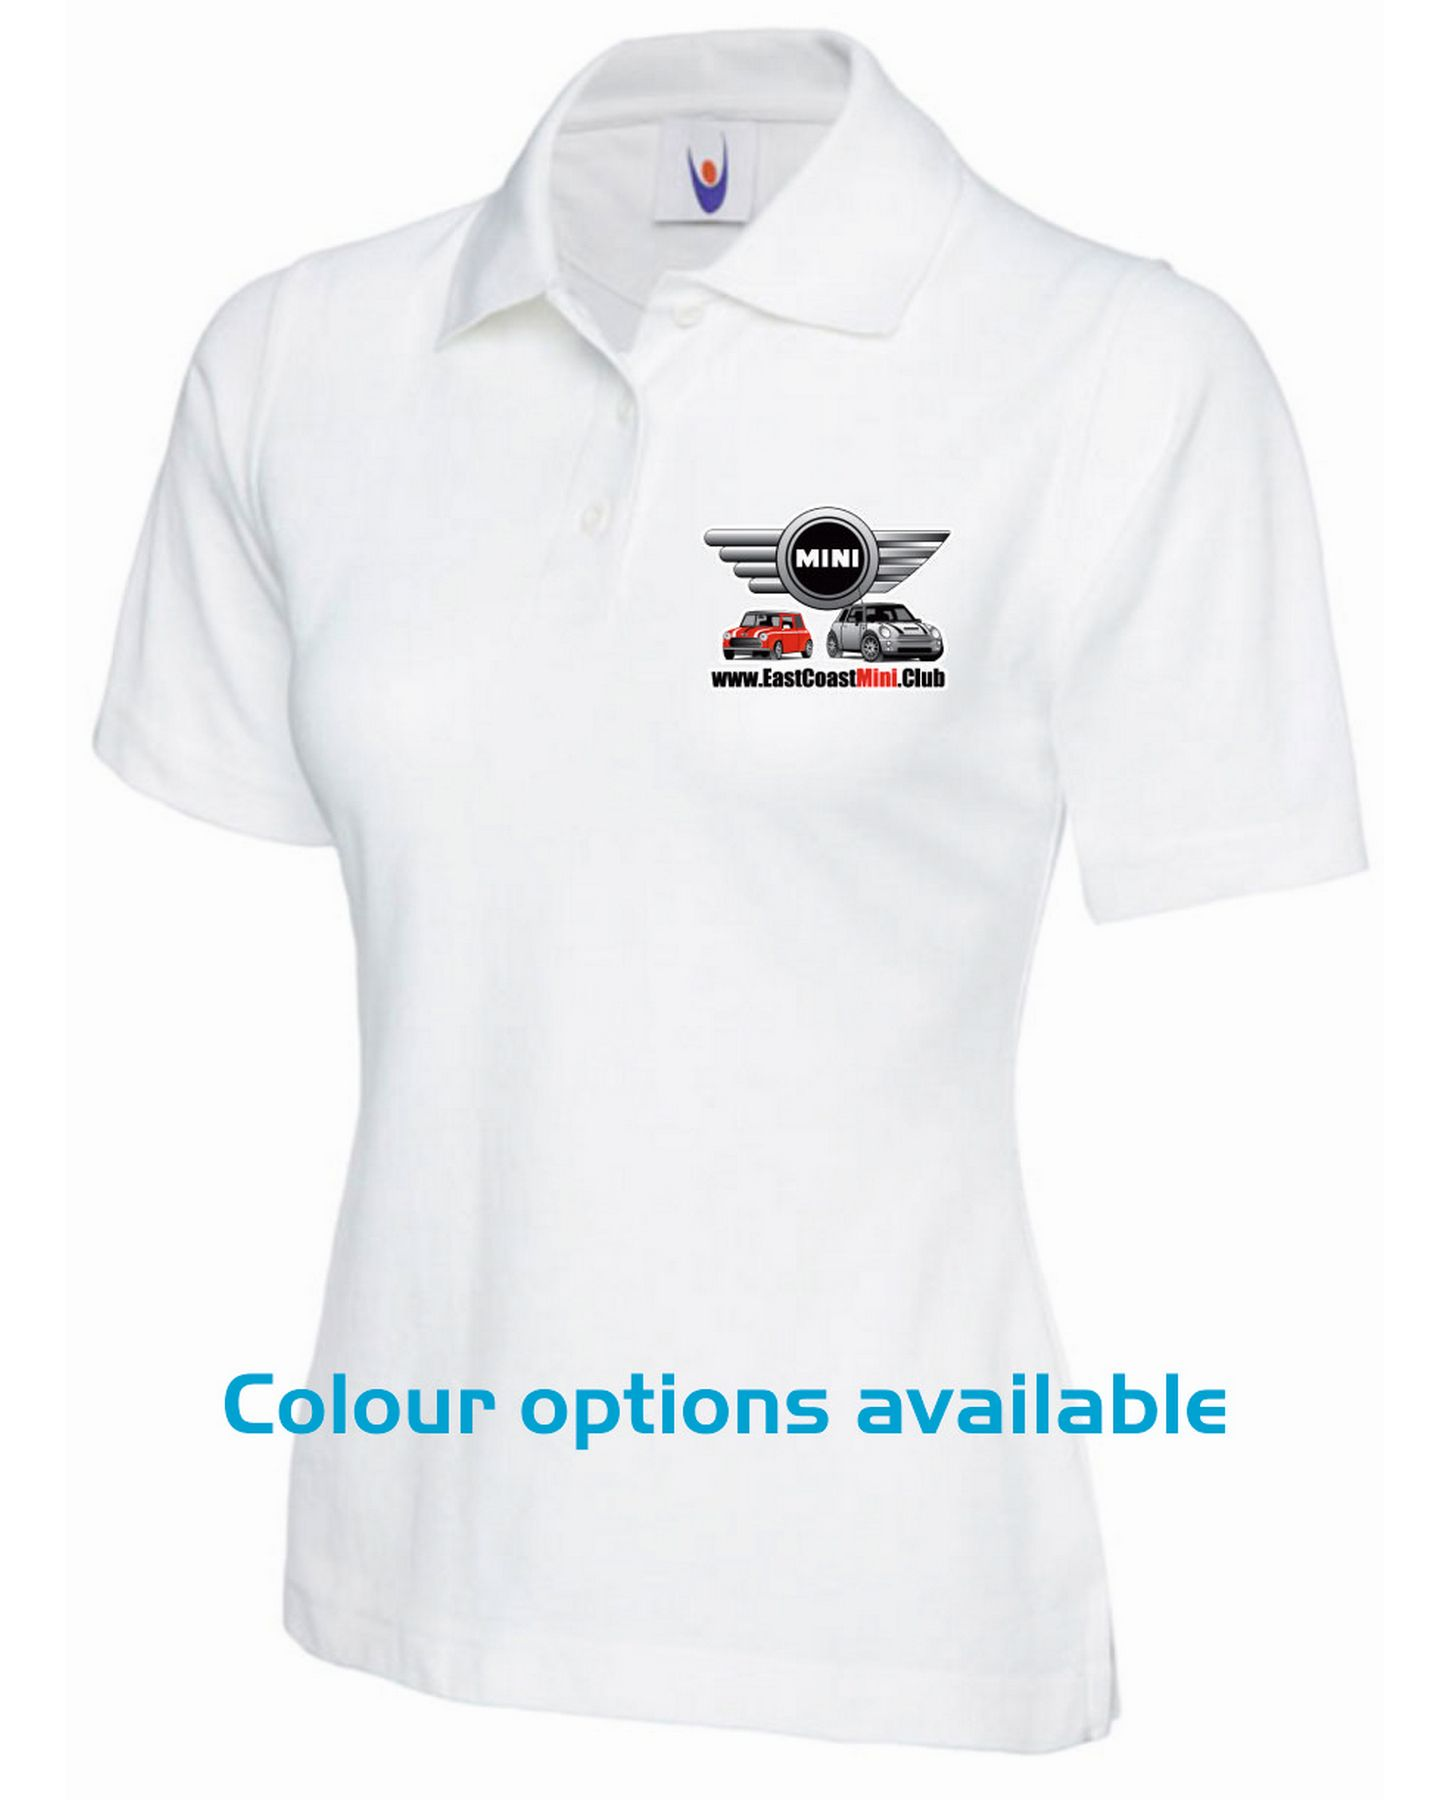 East Coast Mini Club – Premium Polo Shirt (Ladies)